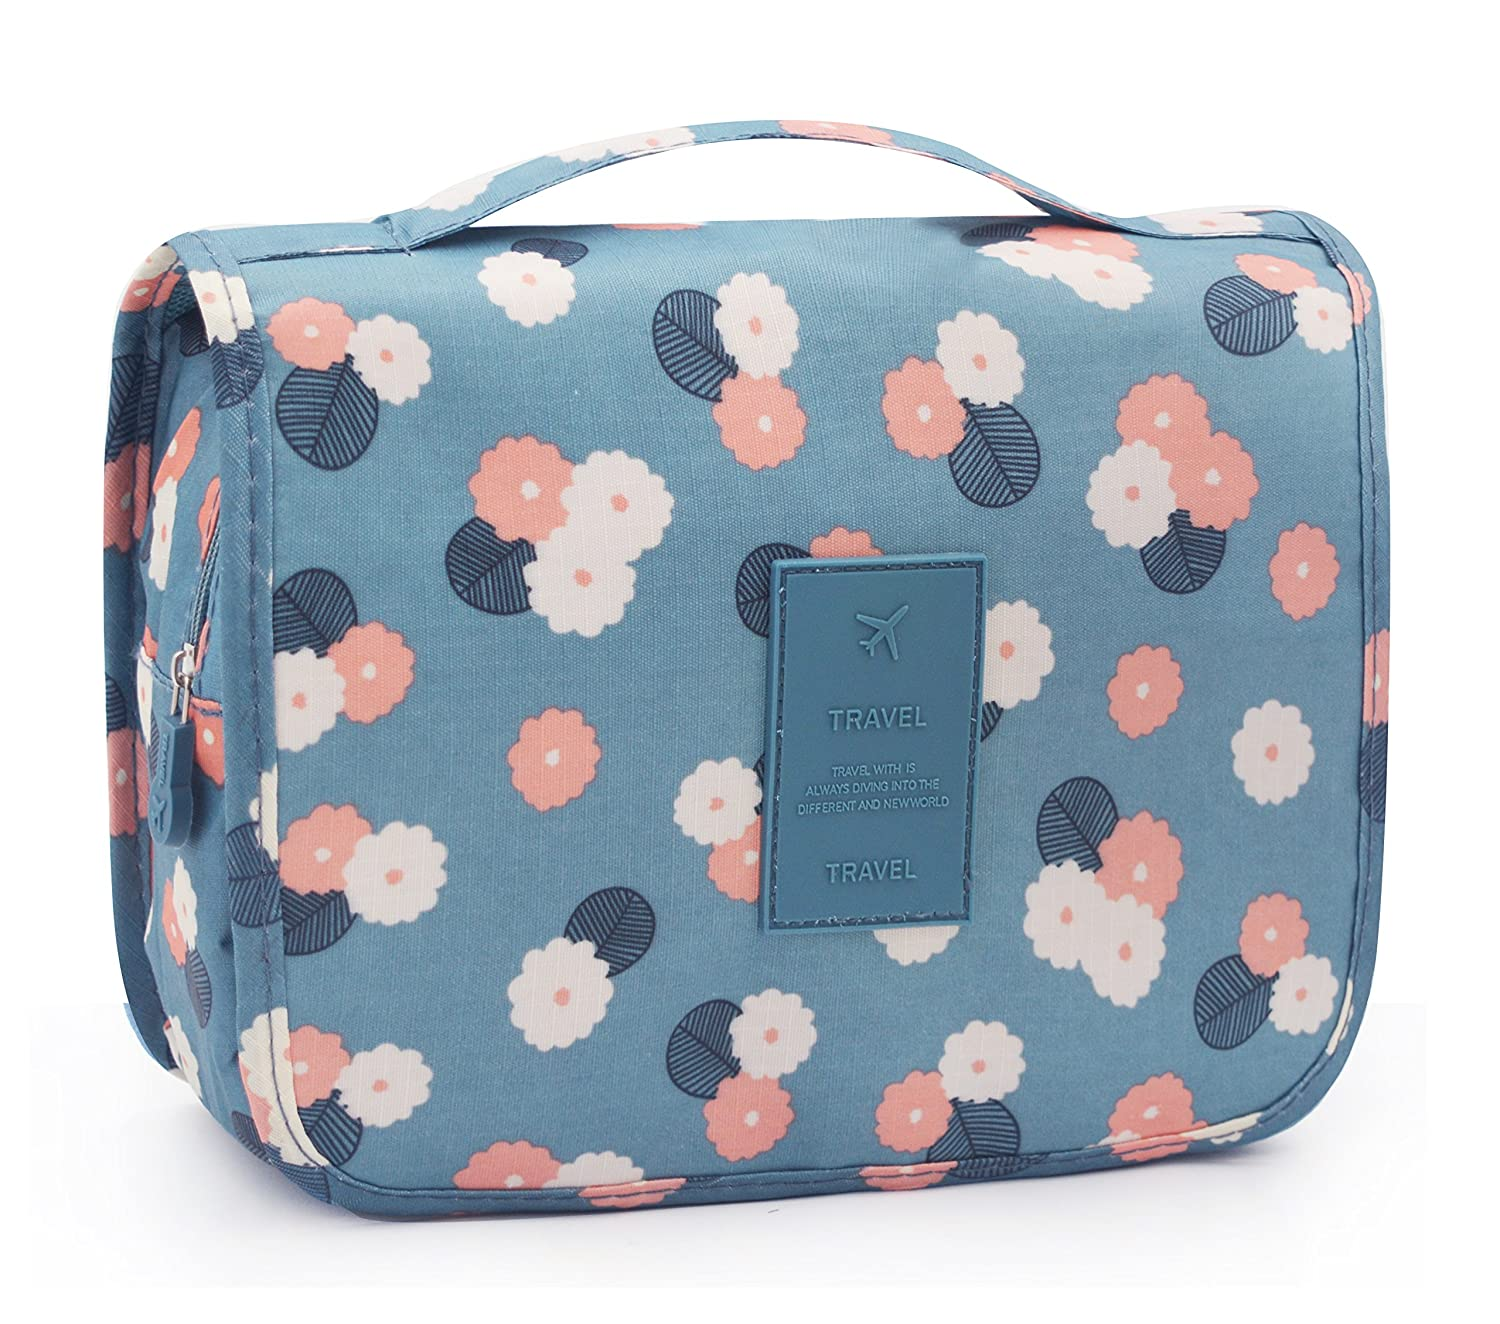 326934c3afca Portable Hanging Travel Toiletry Bag Waterproof Makeup Organizer Cosmetic  Bag Pouch For Women Girl